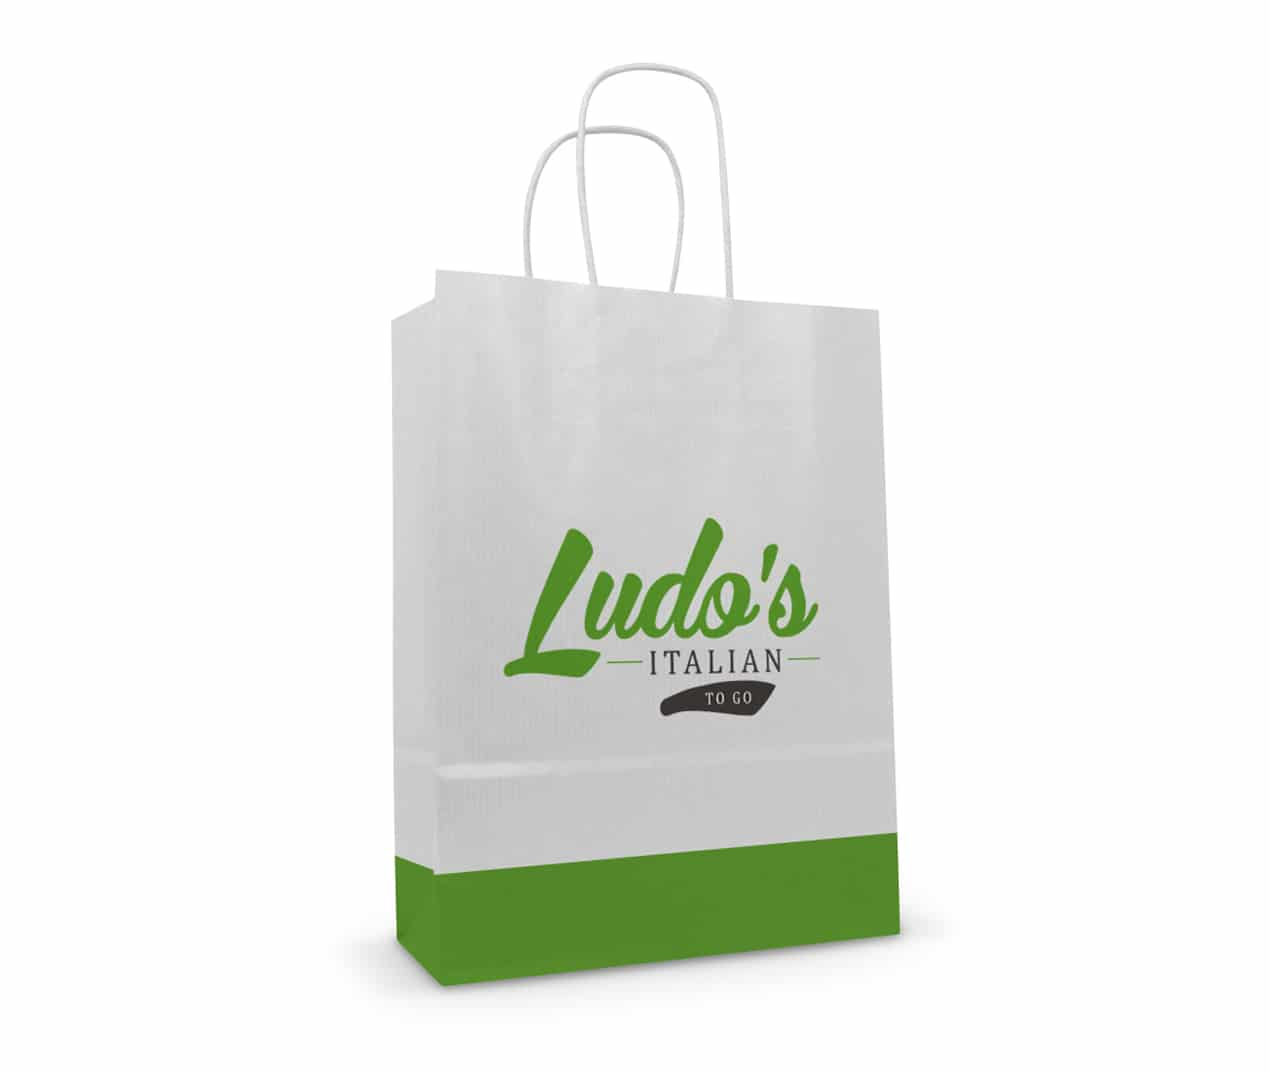 Branding & printed paper carrier bag